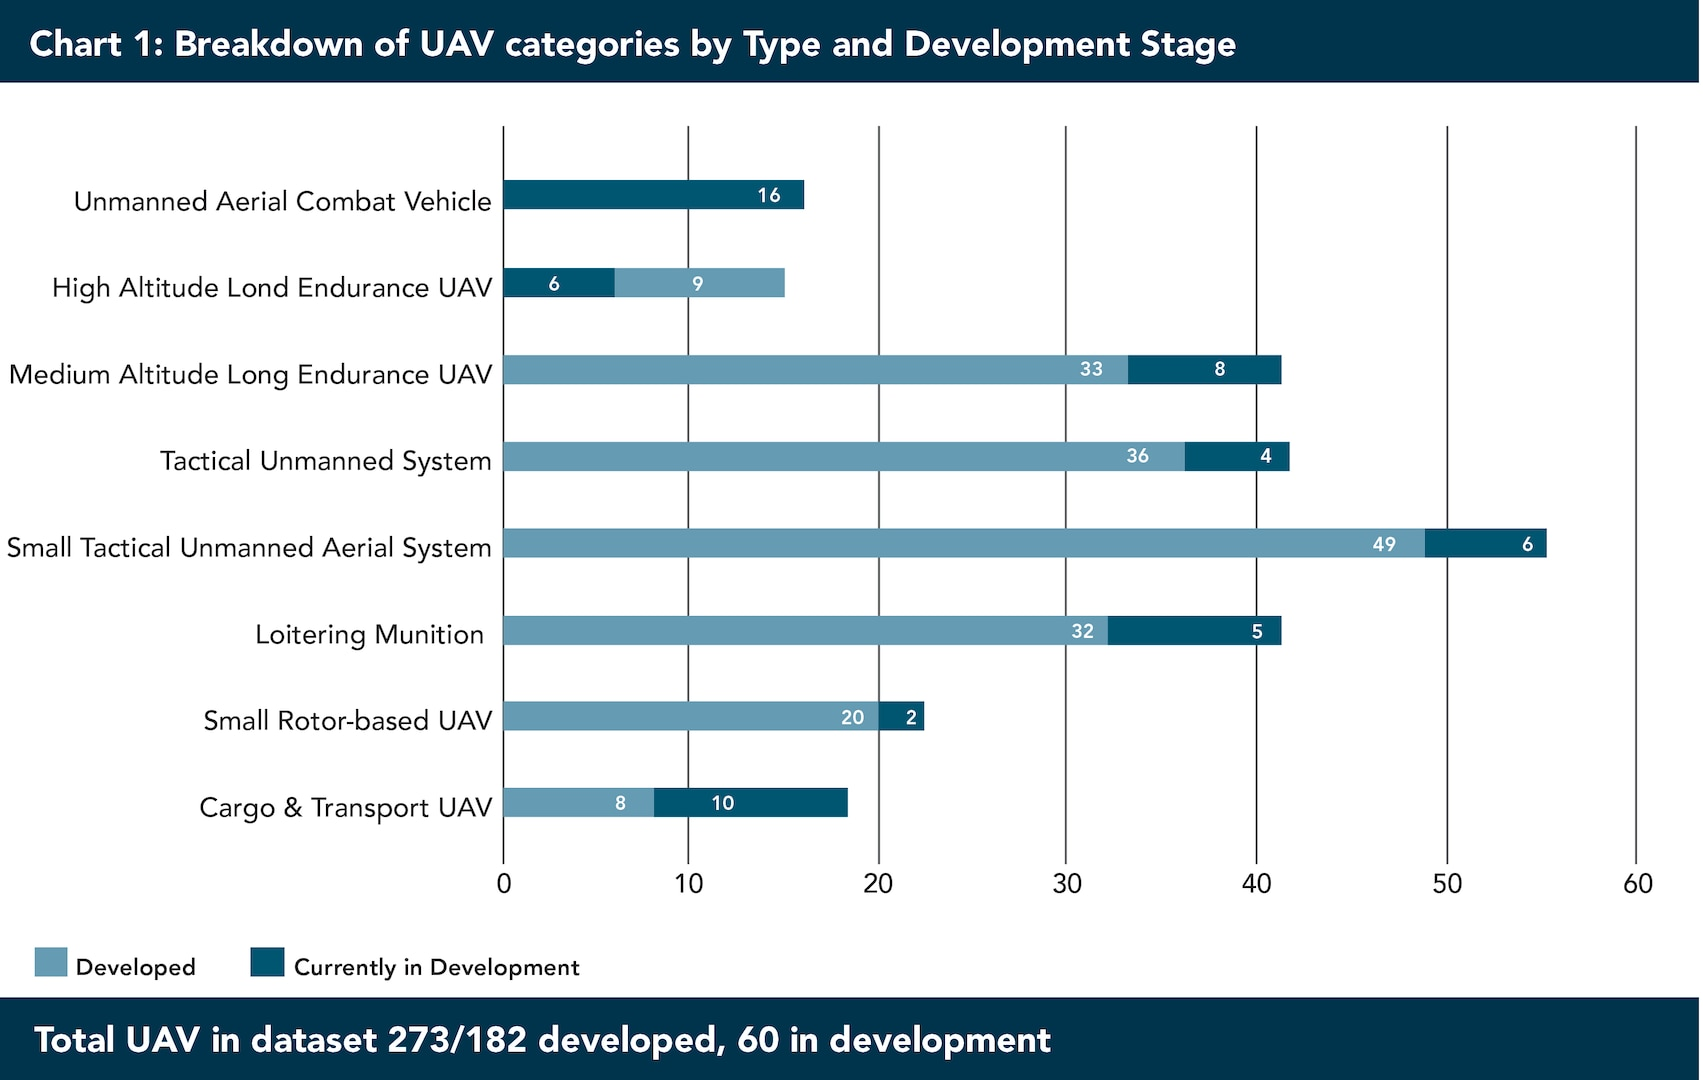 Figure 1. UAV Categories by Type and Development Stage